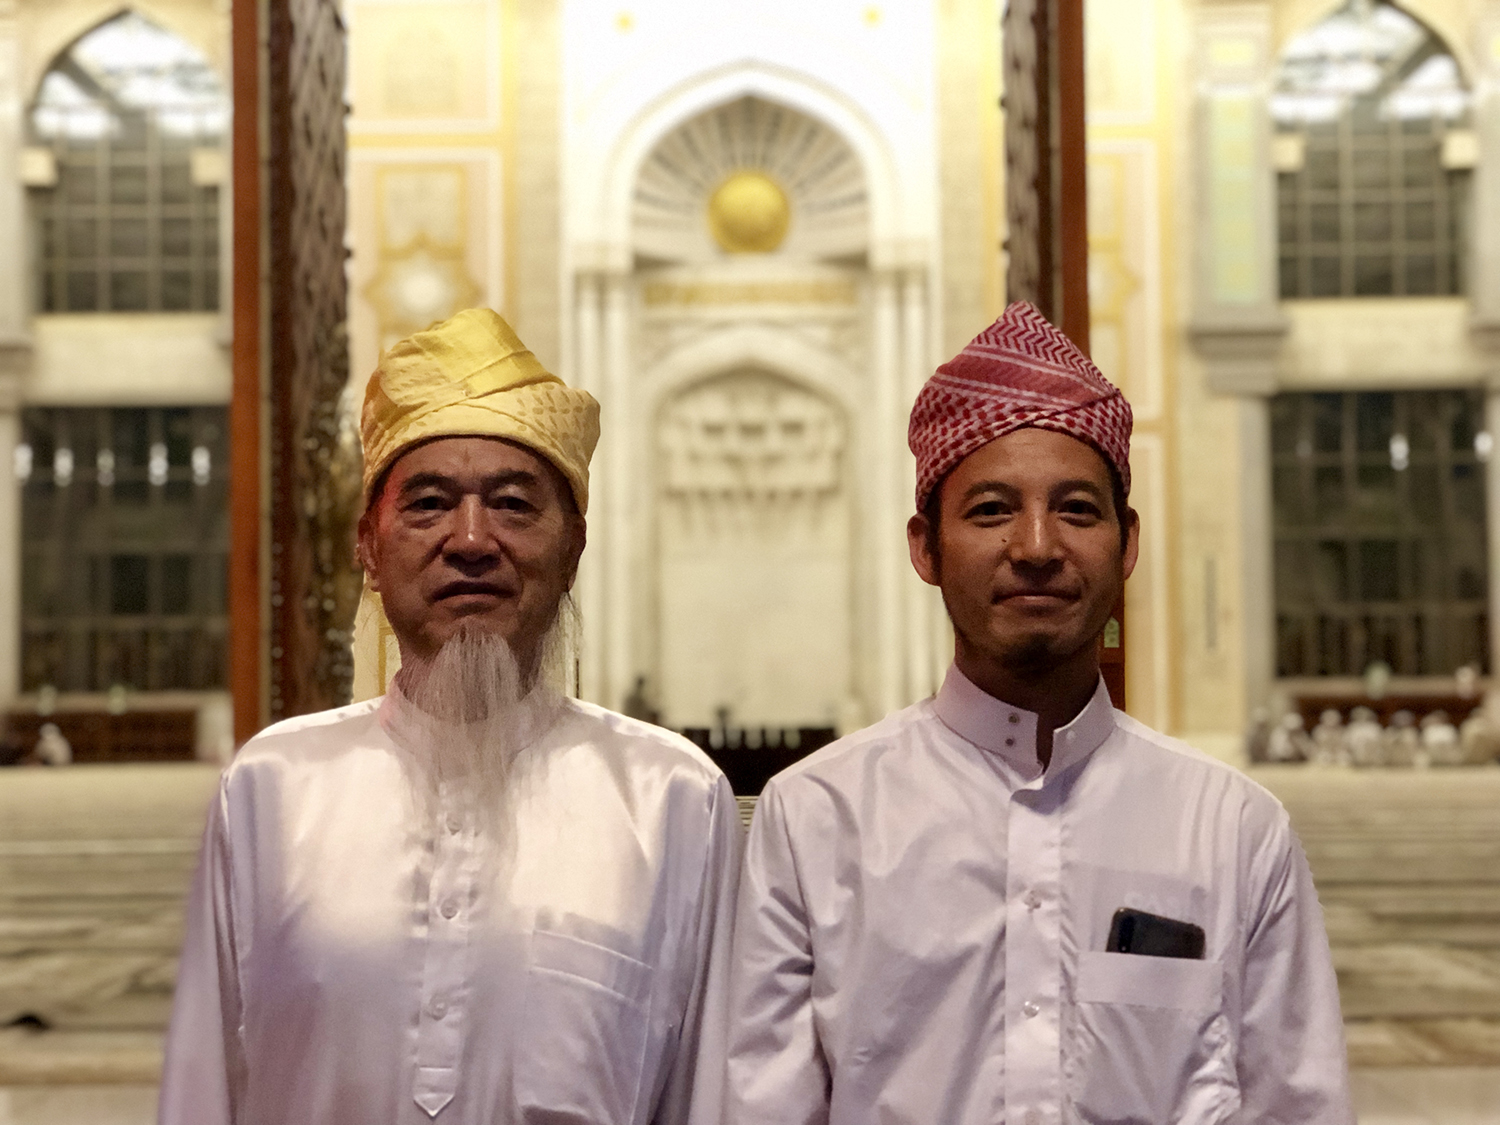 Two imams outside the Grand Mosque in Shadian, China.